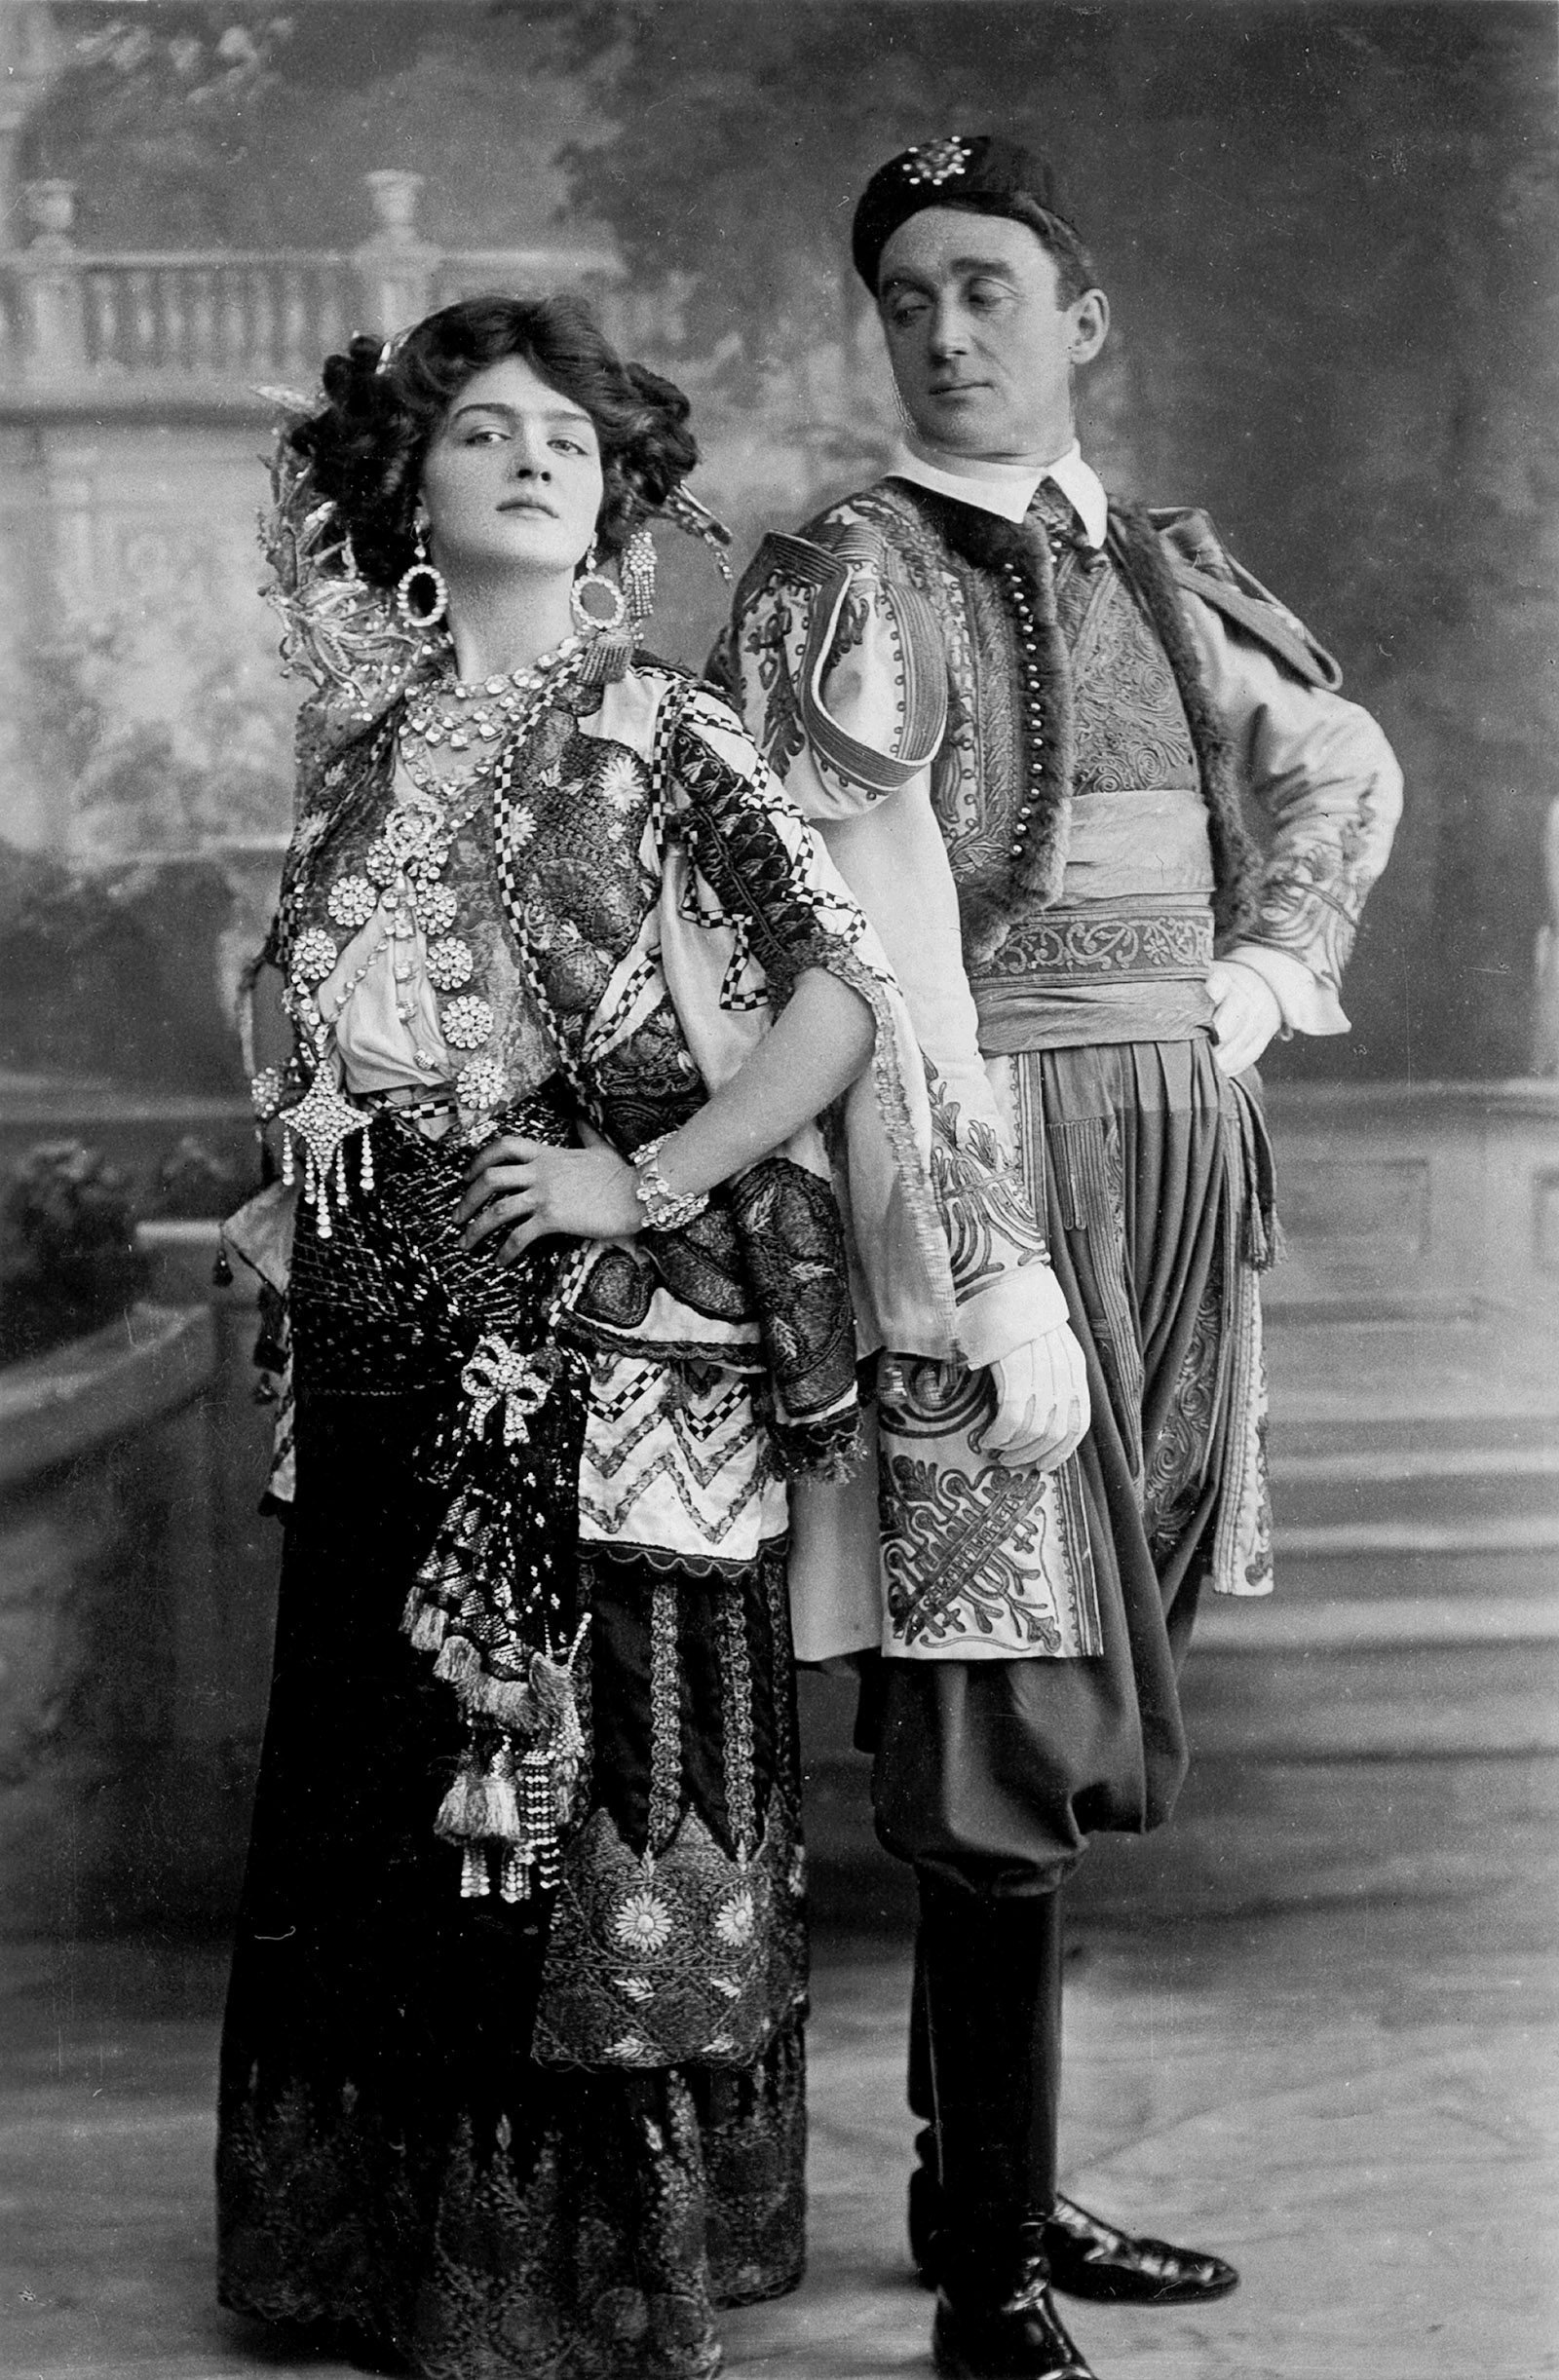 Lily Elsie and Joseph Coyne in the first London production of Franz Lehár's The Merry Widow